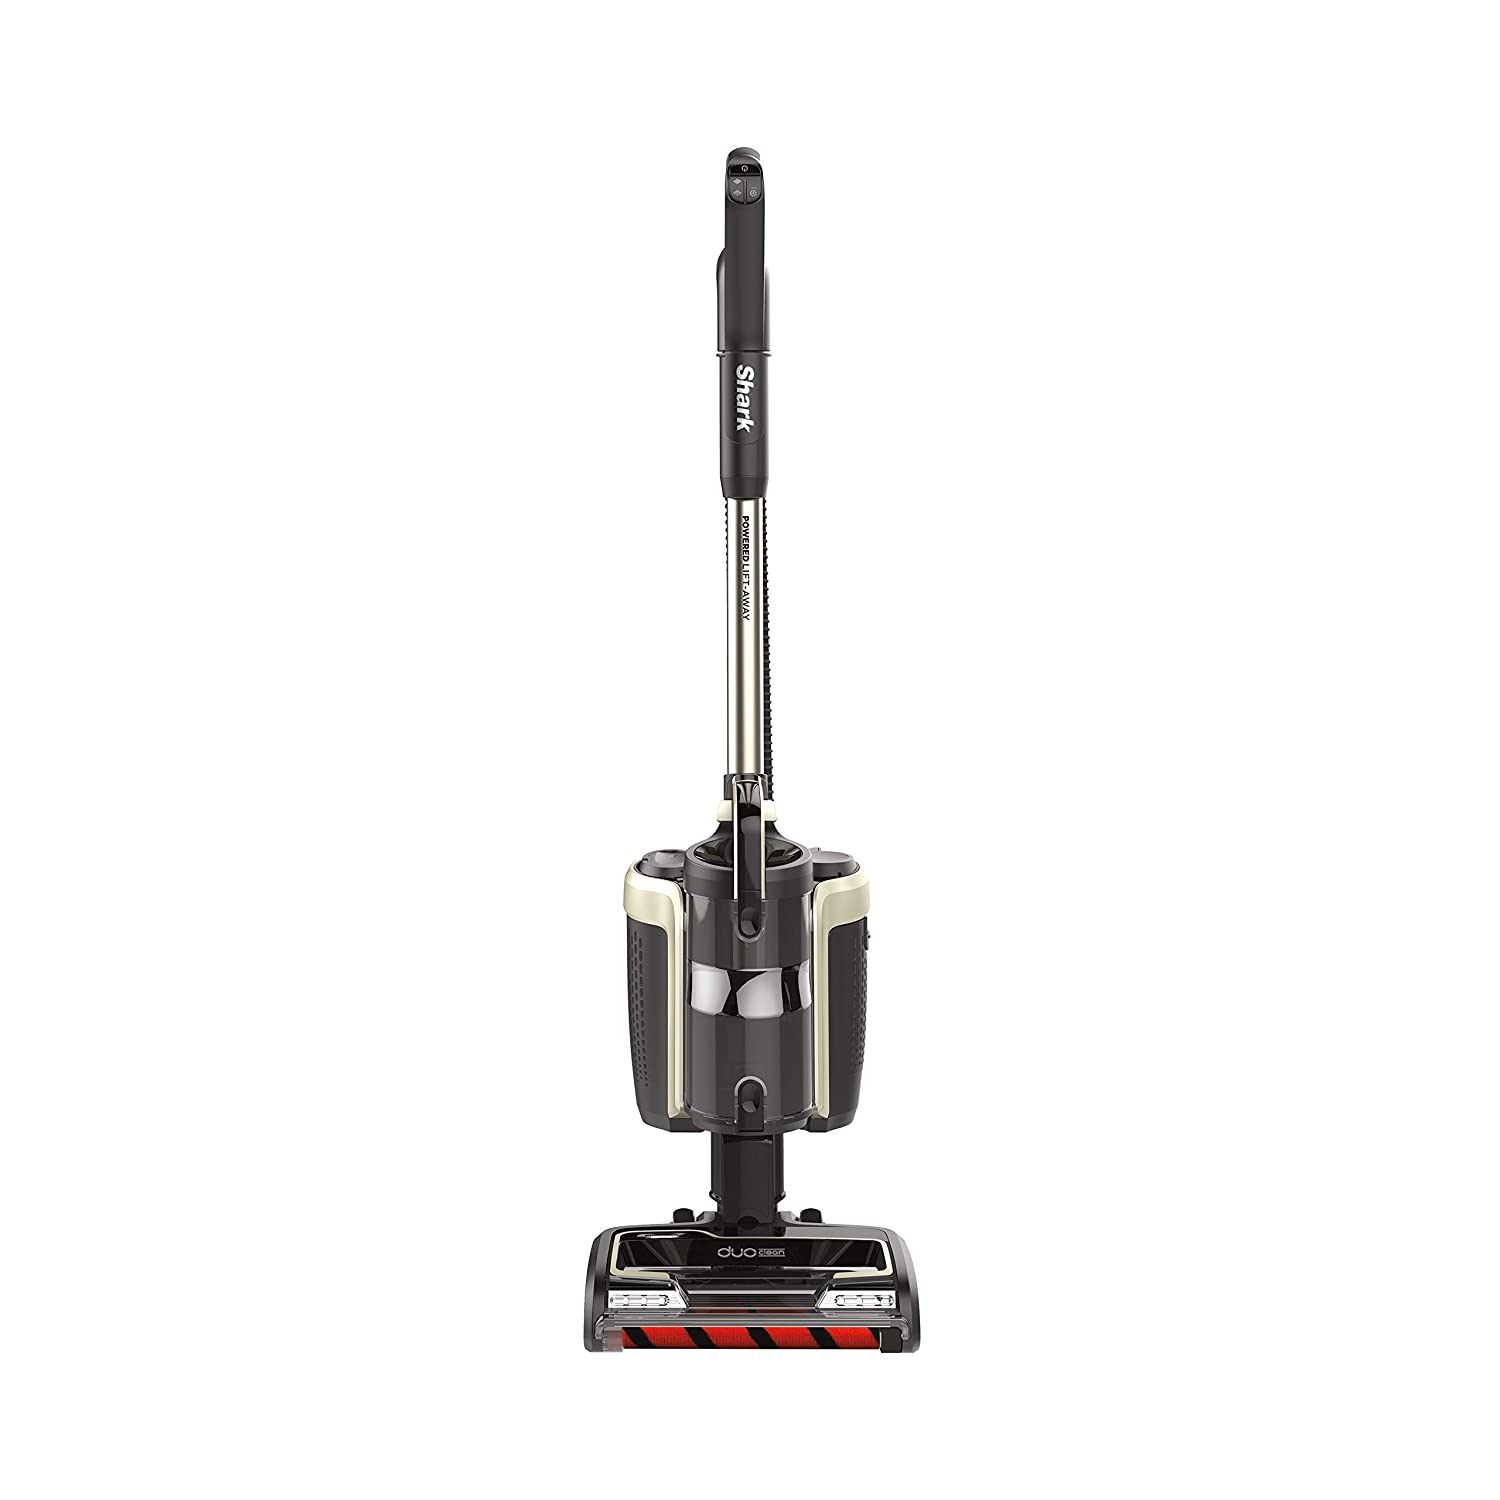 ION P50 Lightweight Cordless Upright Vacuum with HEPA Filter, Handheld Vacuum Mode, and Shark DuoClean for Carpet and Hardfloor Cleaning (IC162) (Renewed)